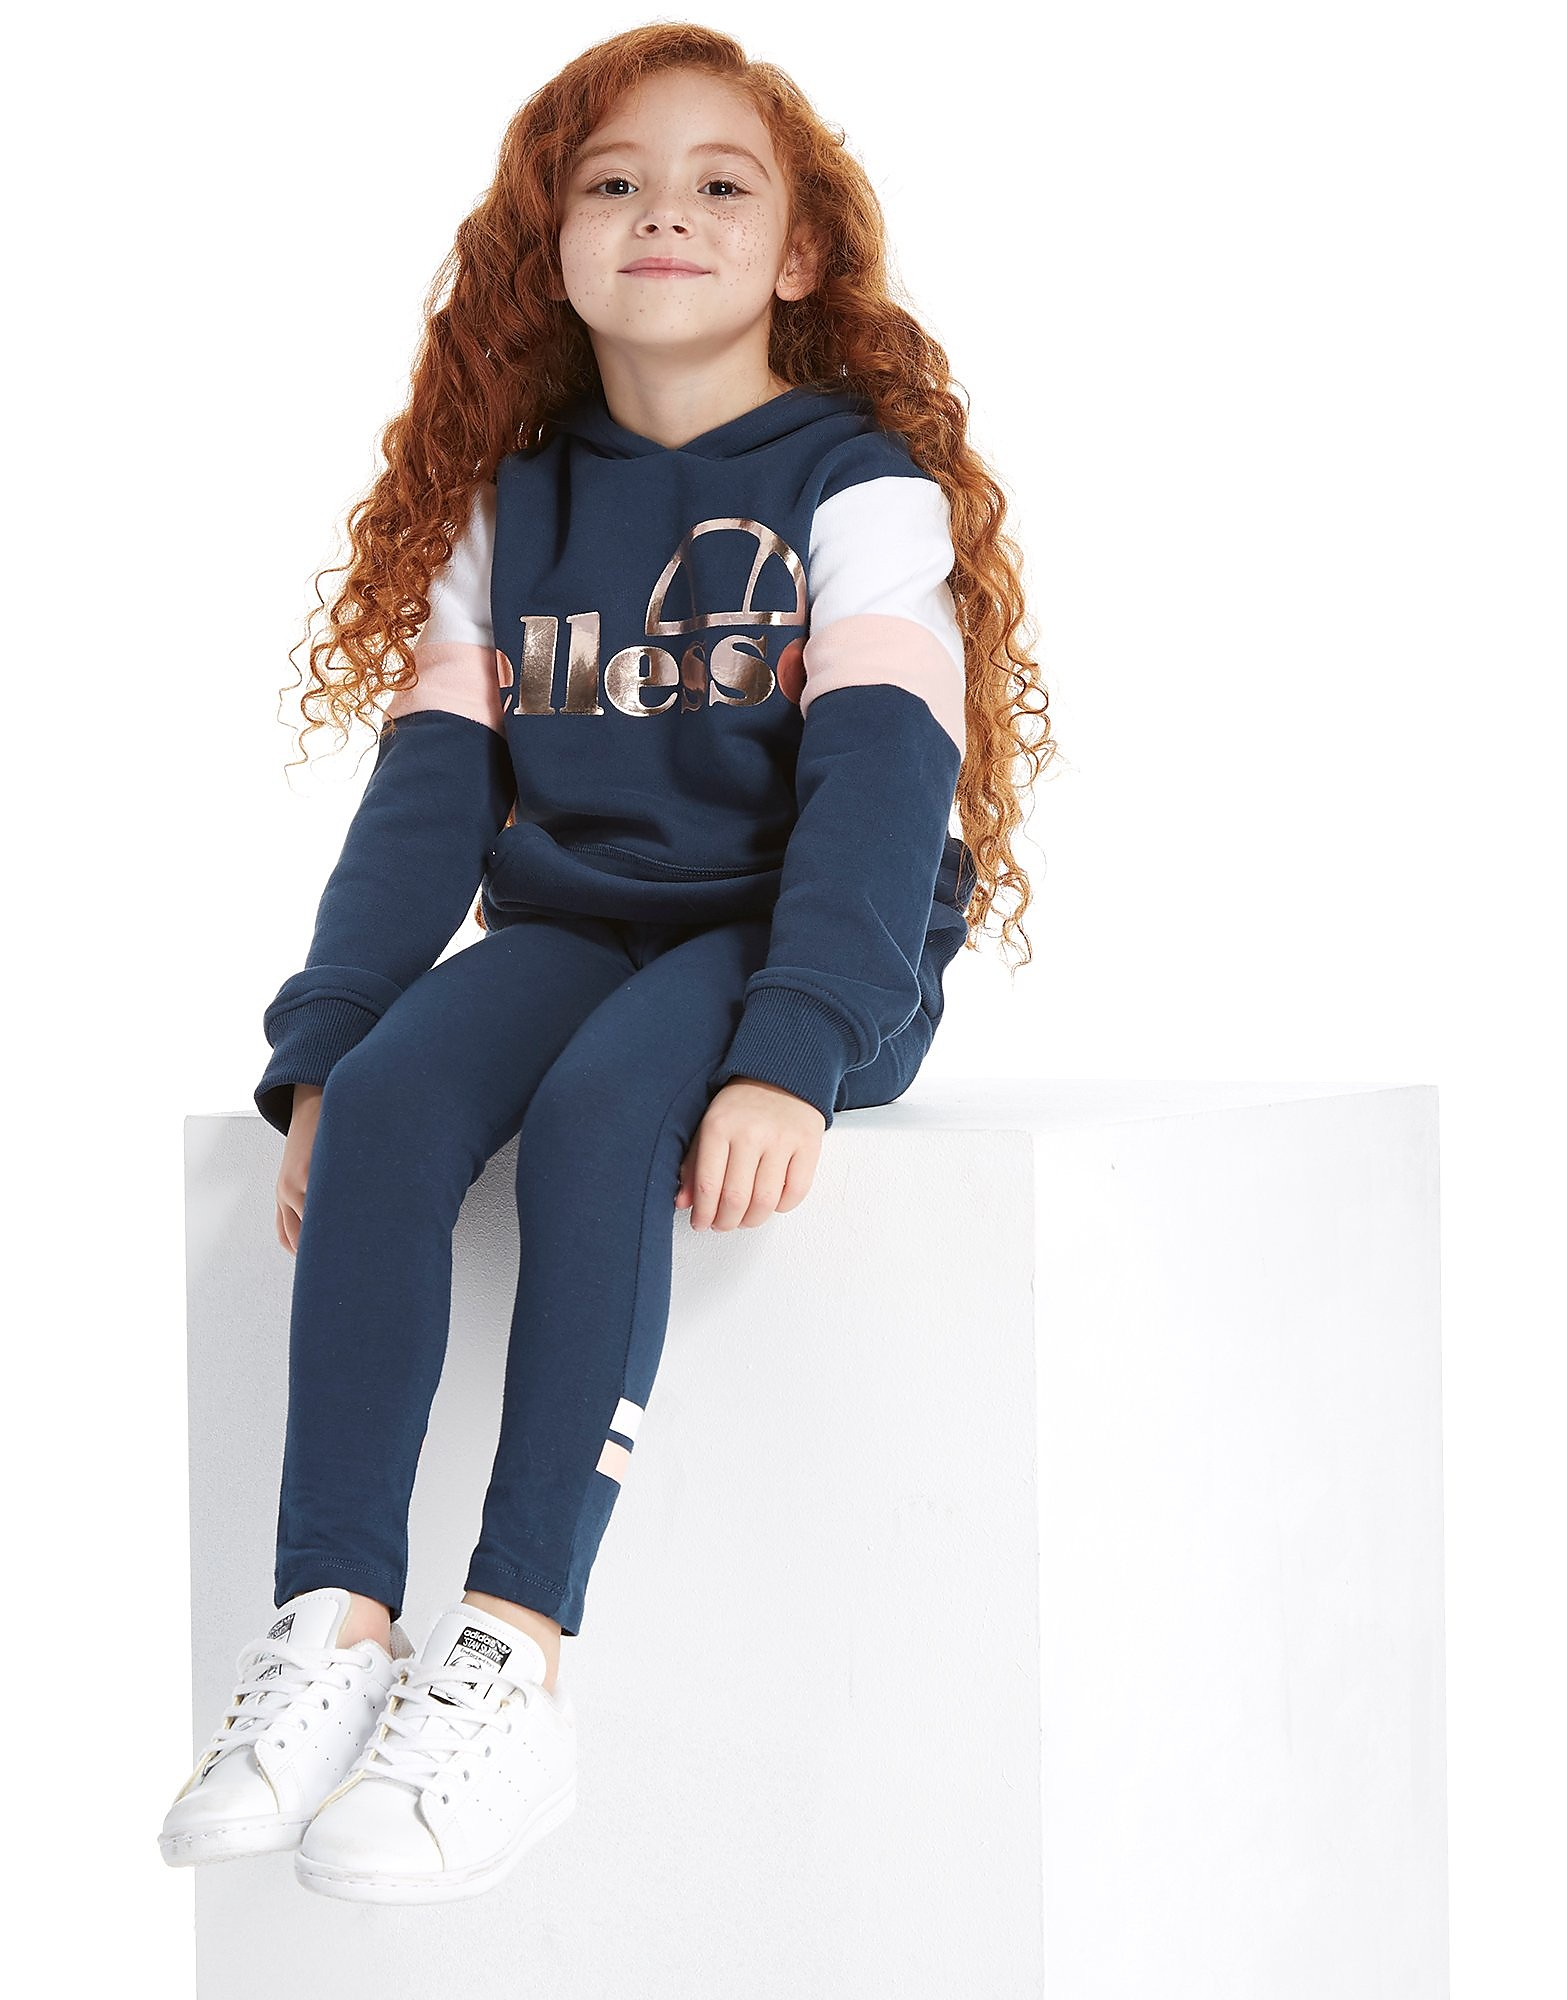 Ellesse Girls' Doria Hoodie/Leggings Set Children